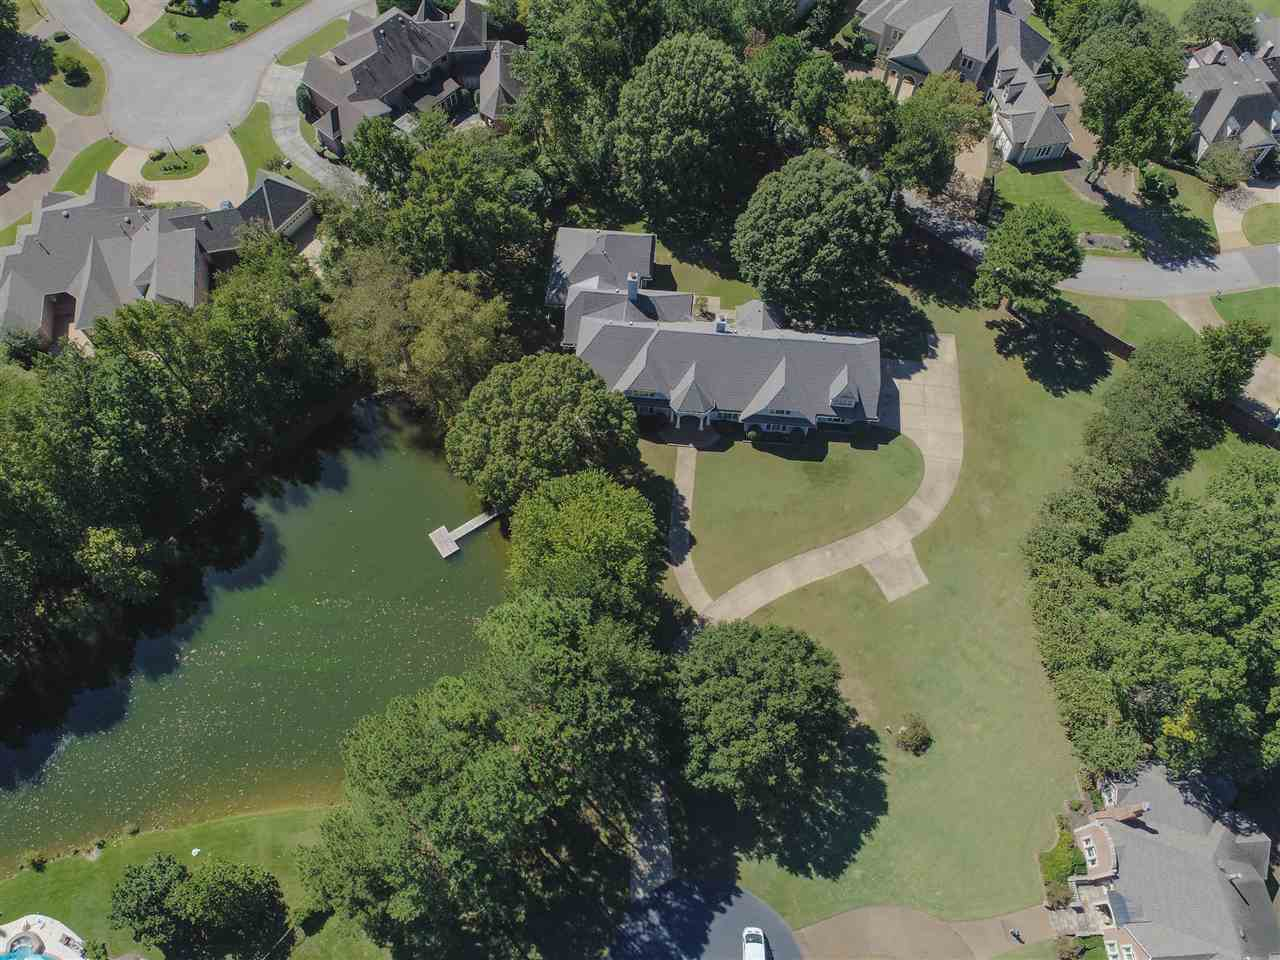 Relax and have family time on over 2 acres this property is nestled upon. Take a stroll along the walking paths and have a picnic in the common areas this spectacular gated neighborhood has to offer.